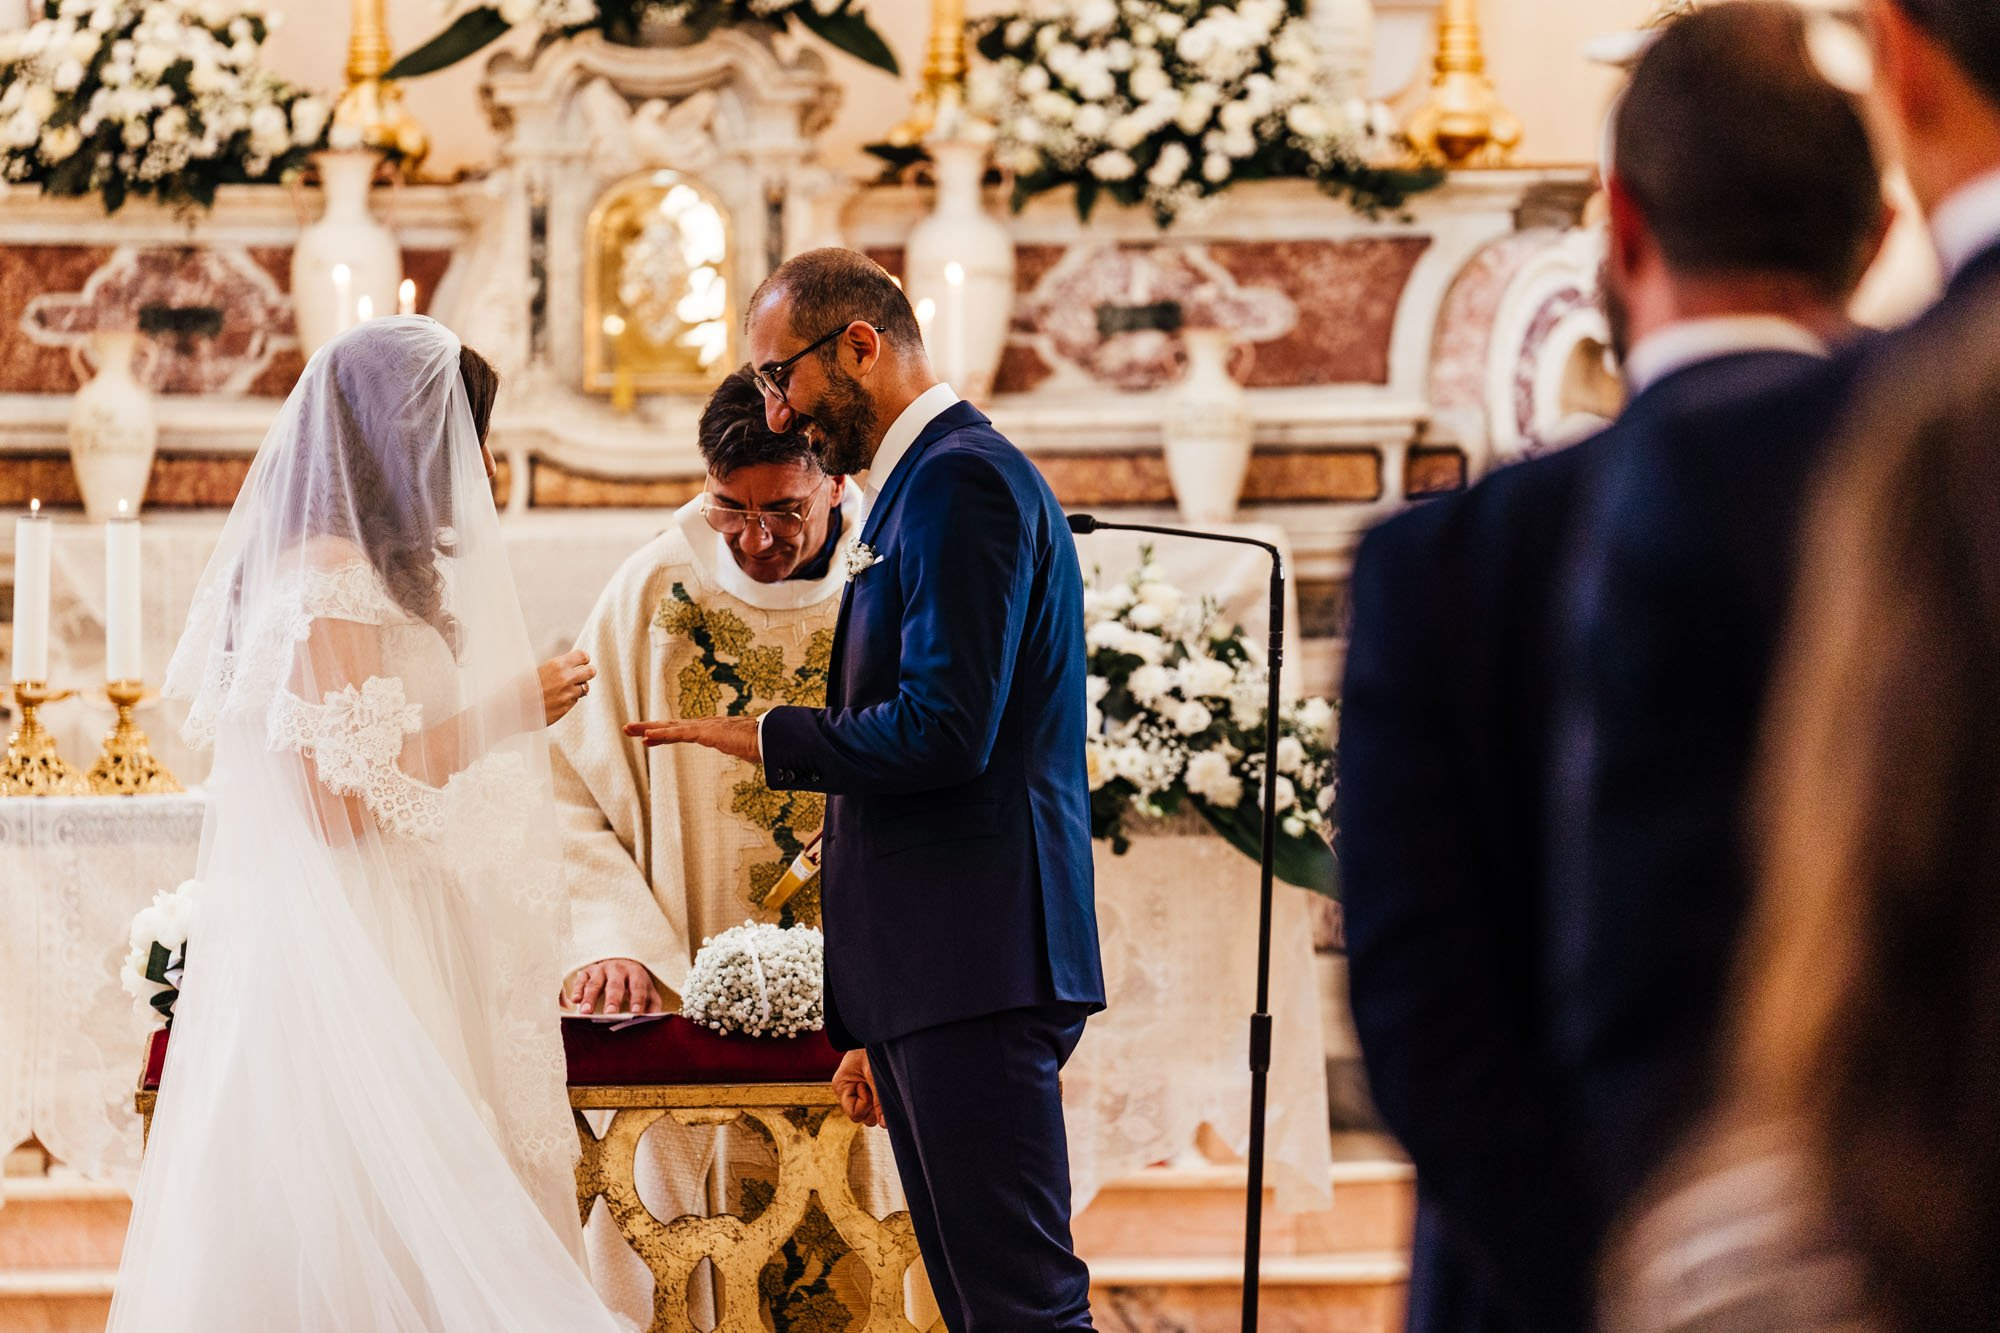 wedding-in-italy-mary-mimmo-25